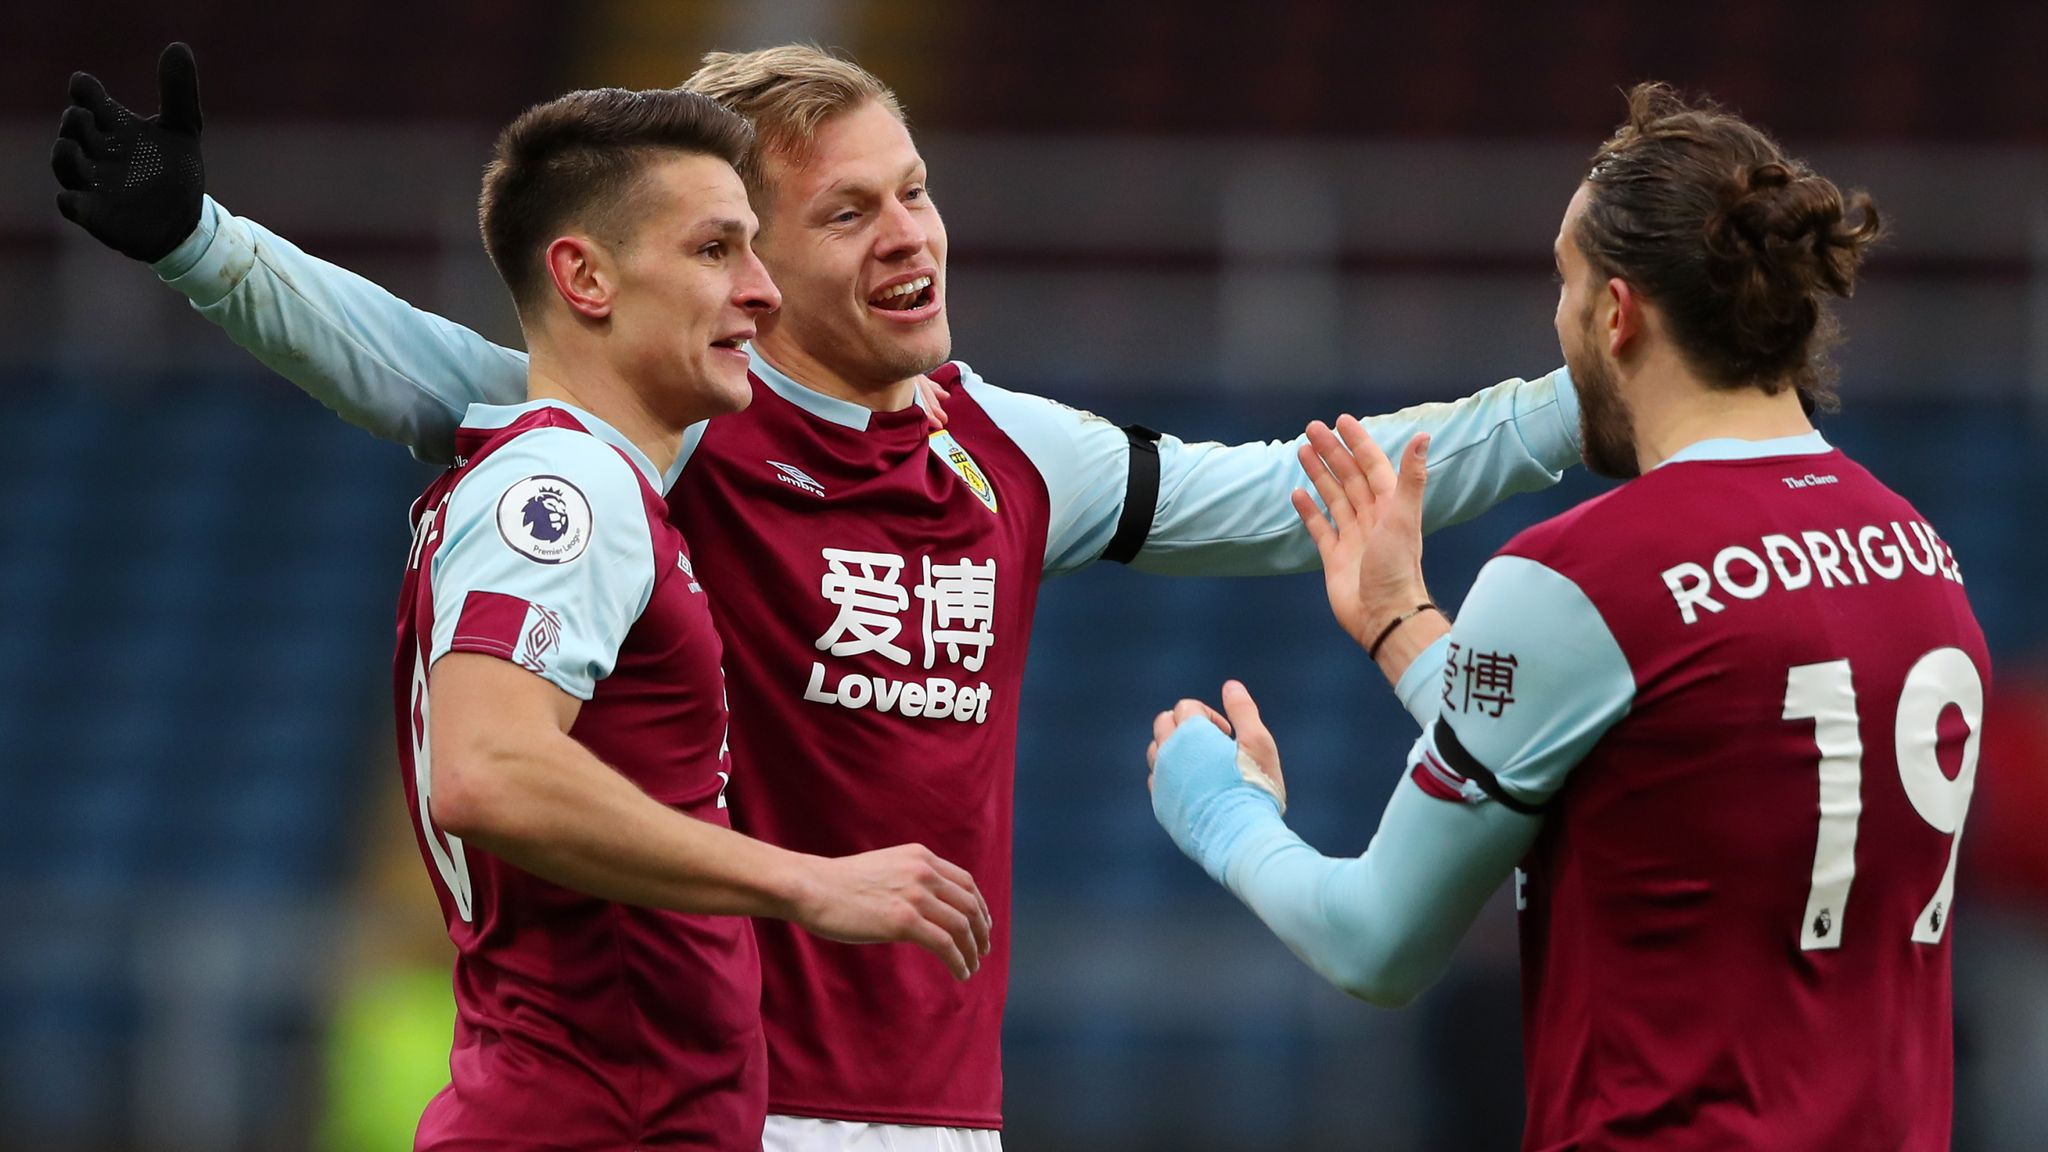 Burnley 3-0 Bournemouth: Cherries capitulate after VAR disallows two goal